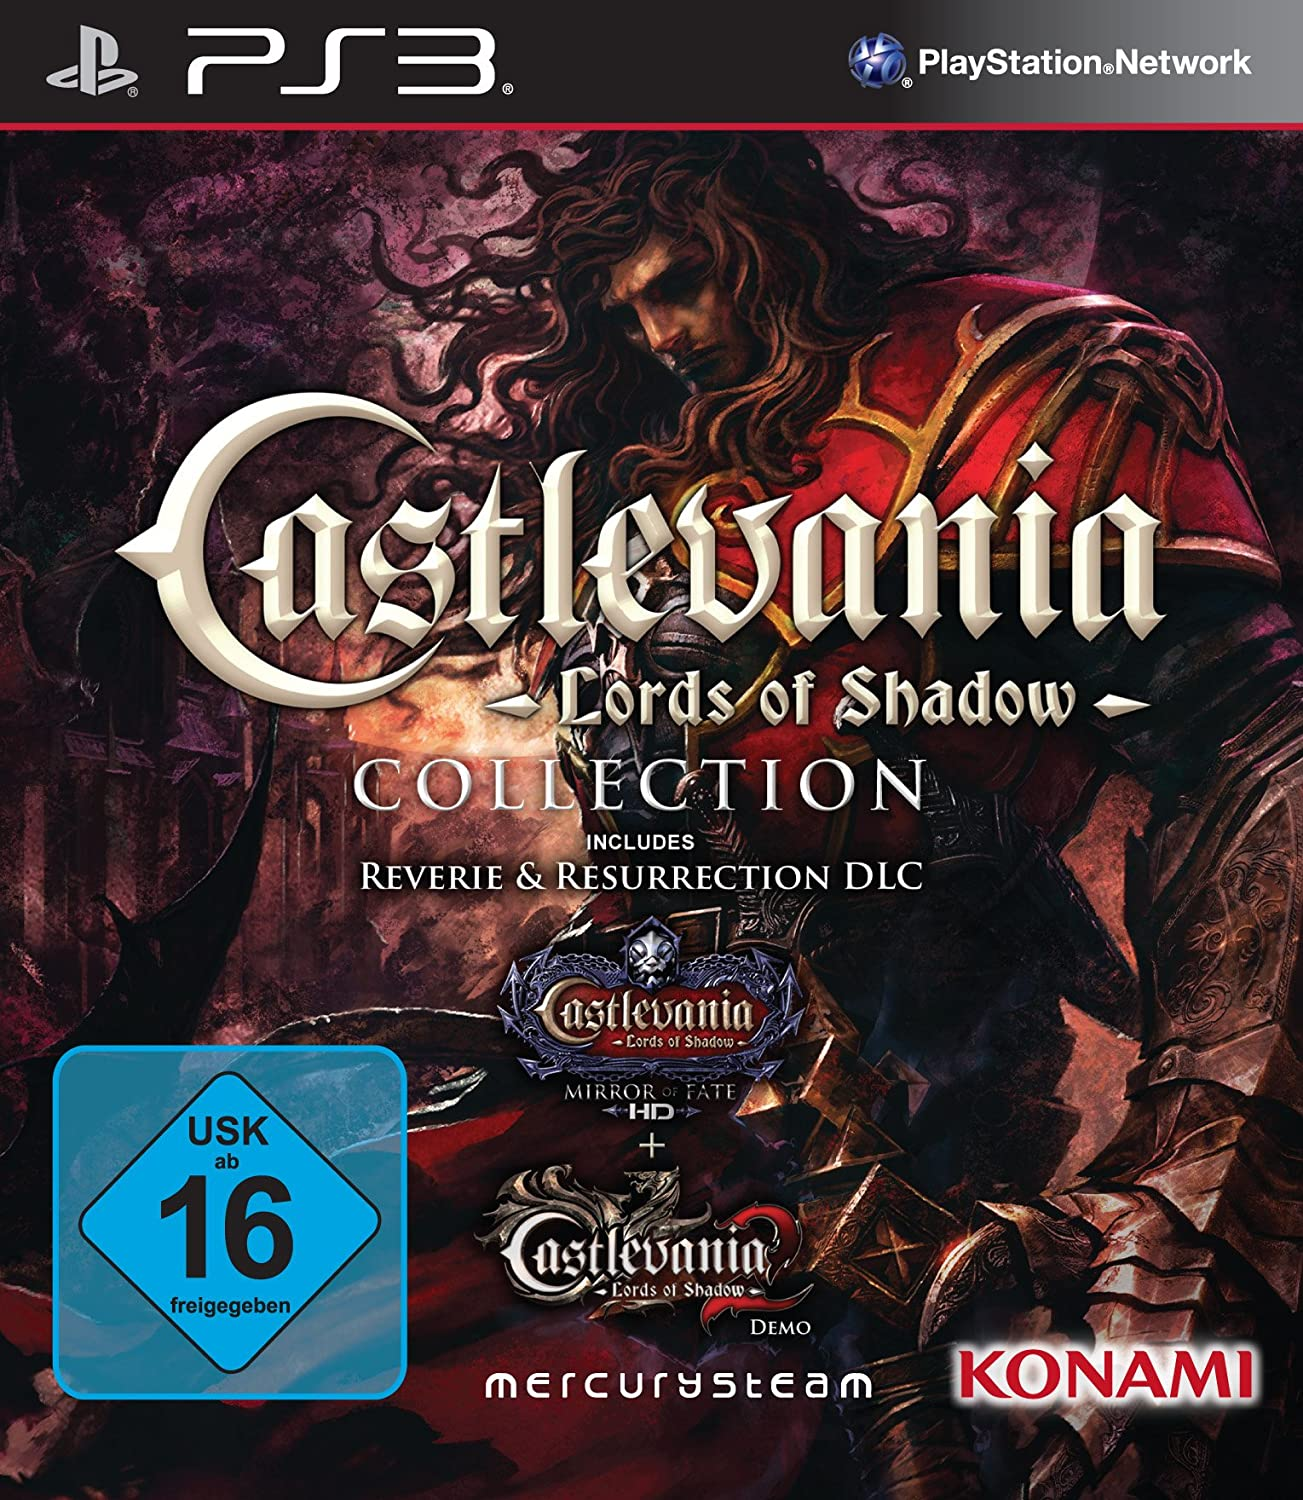 Castlevania - Lords of Shadow, PS3